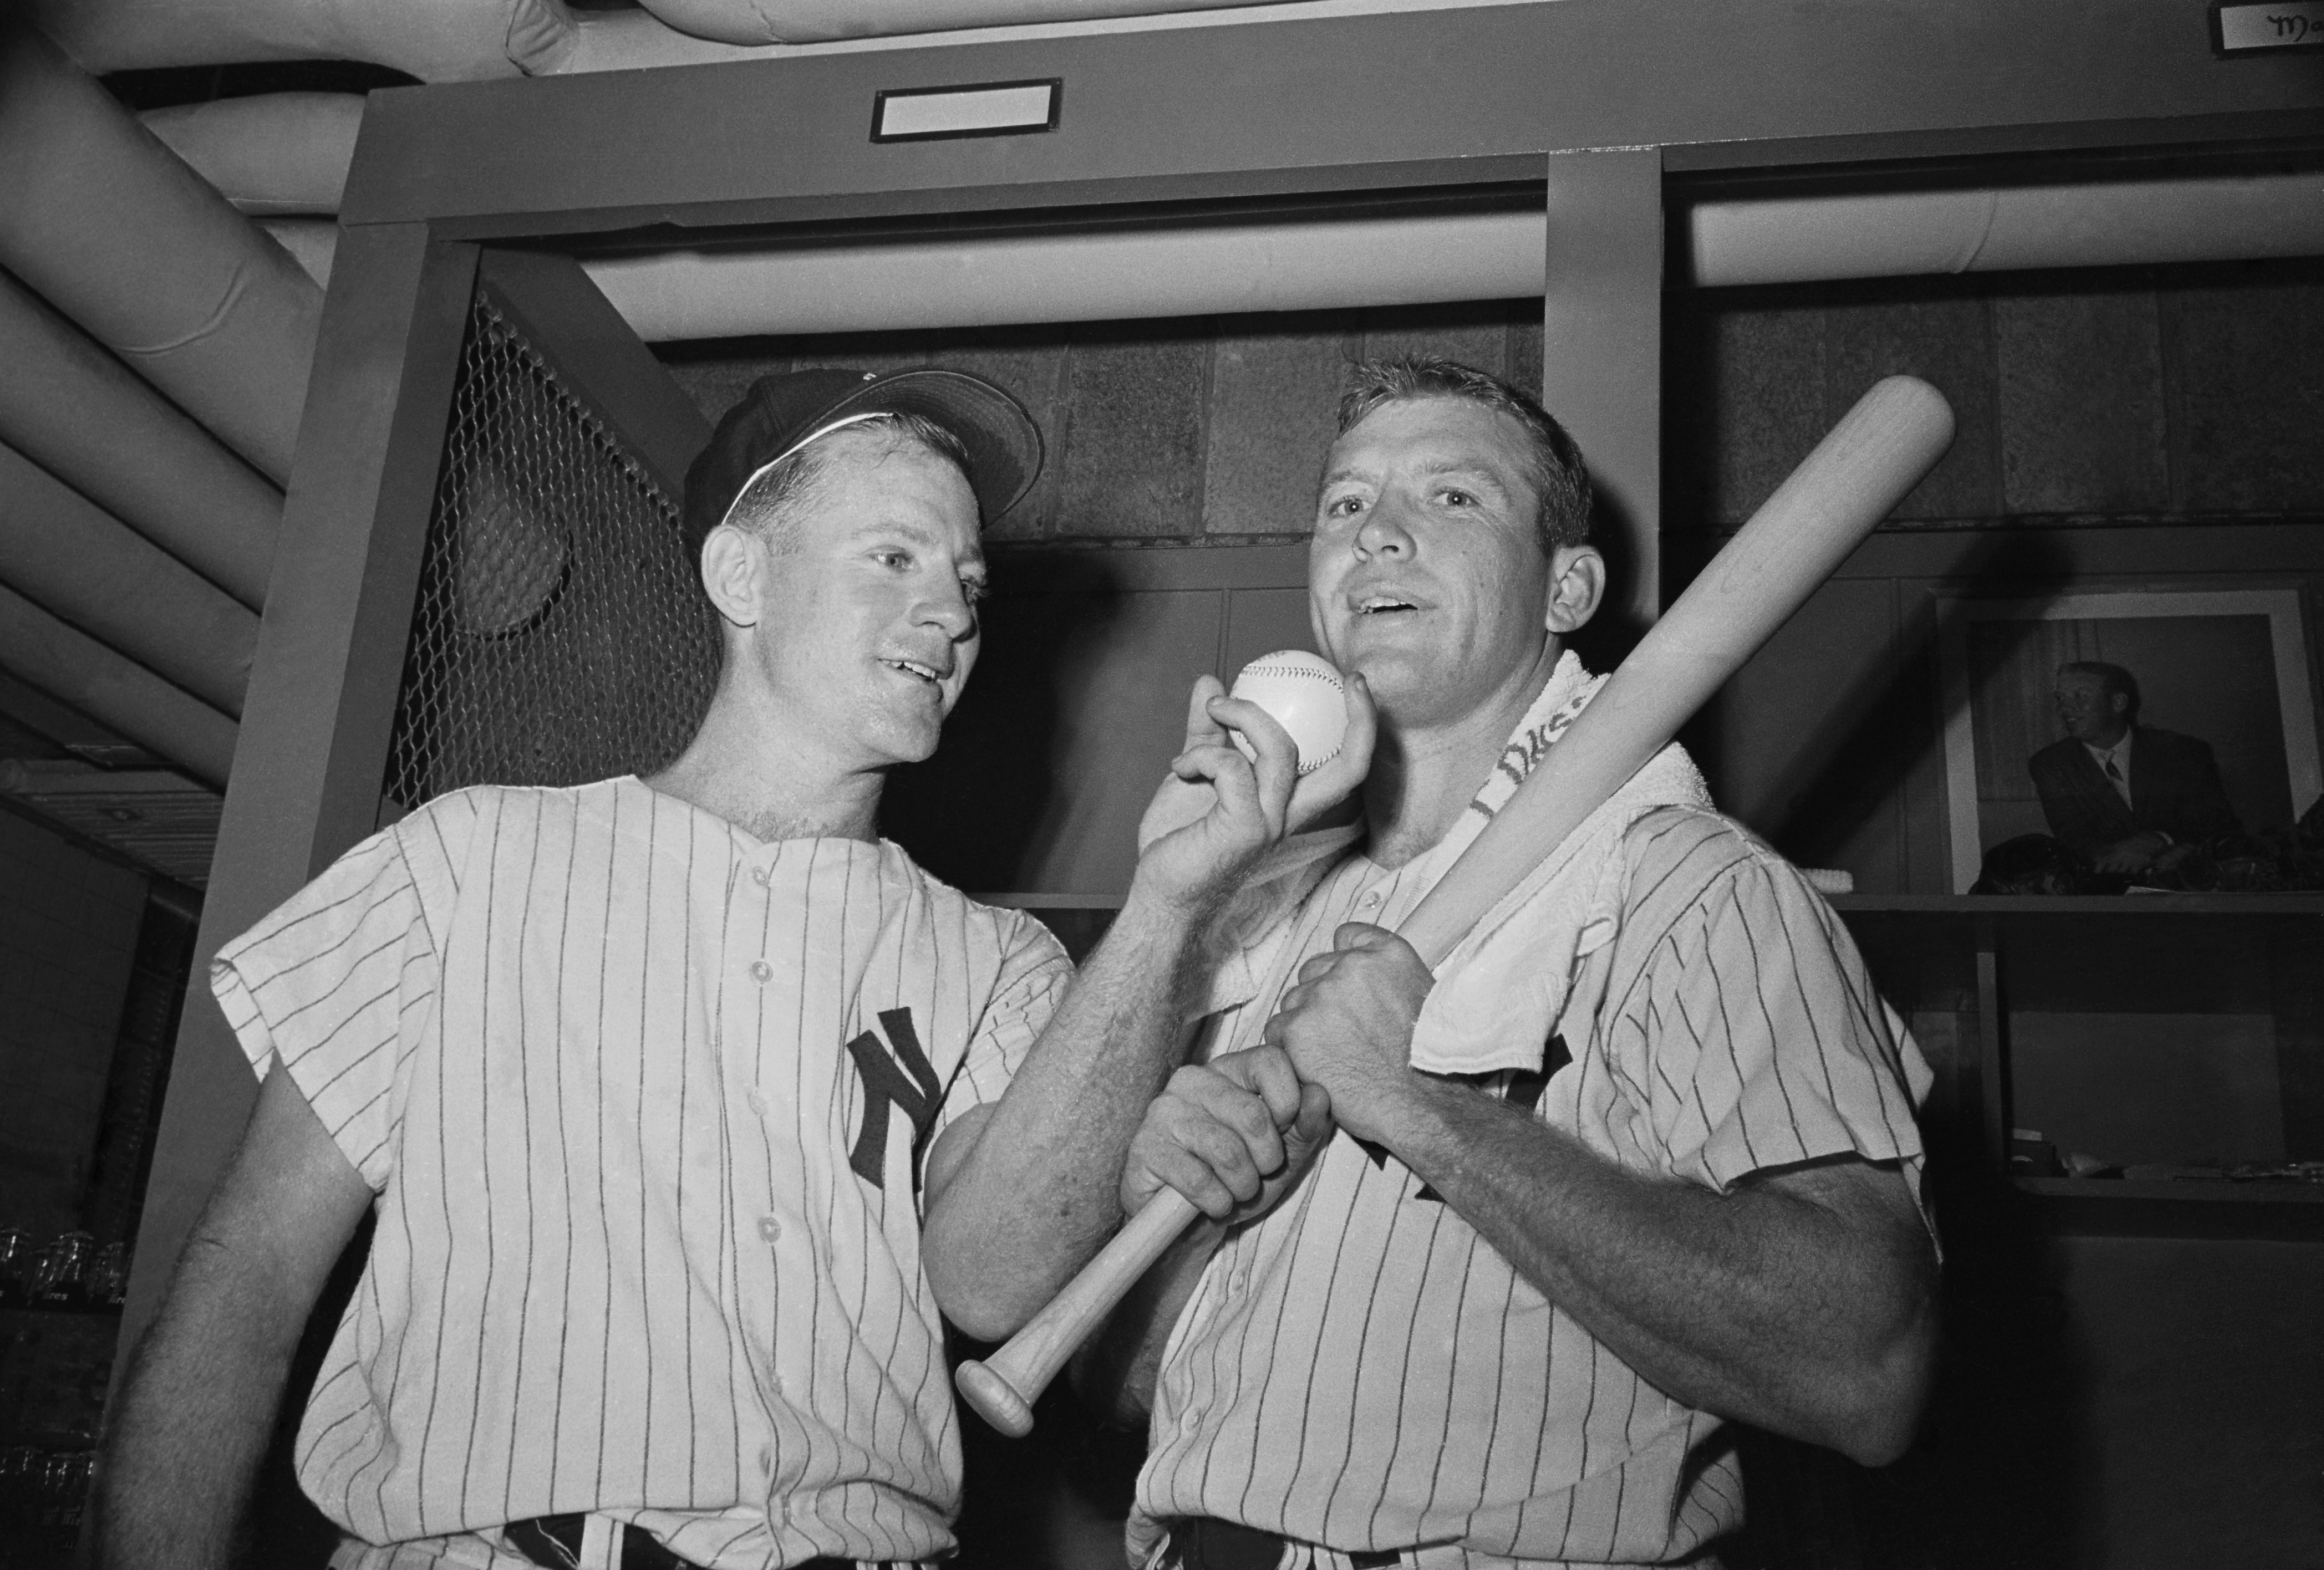 Mickey Mantle and Whitey Ford Posing Together